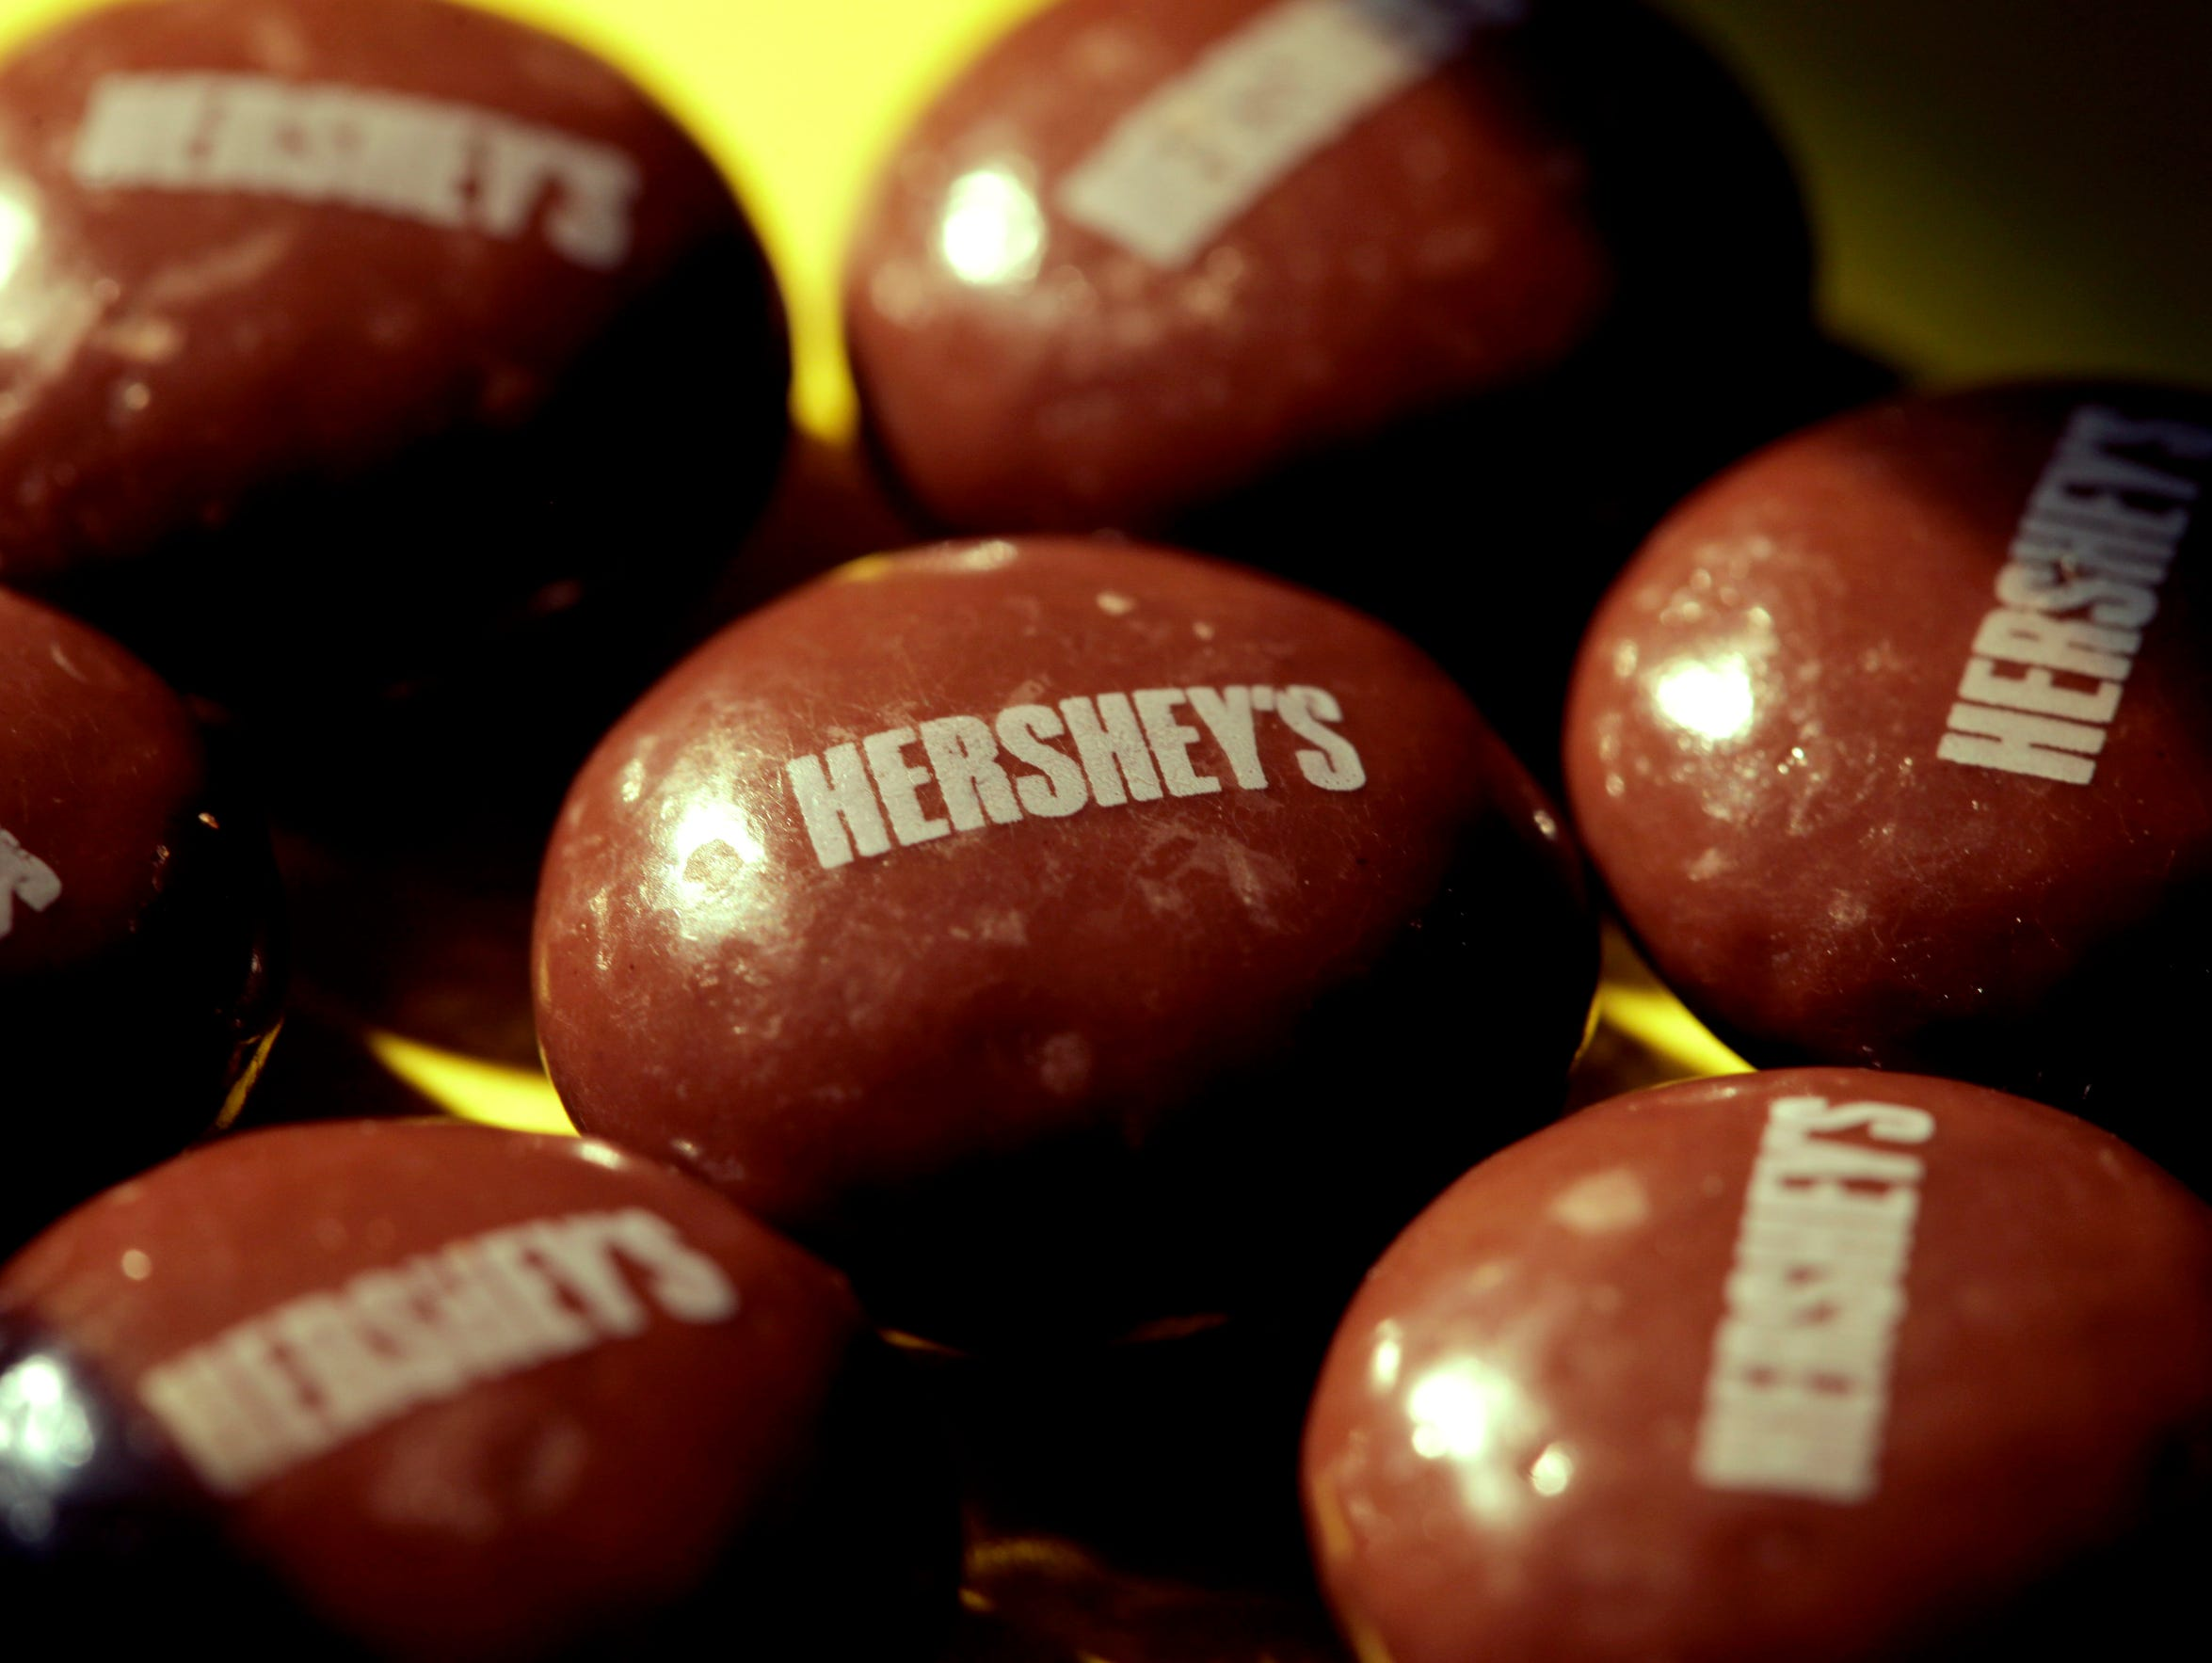 Hershey is one of the nation's largest candymakers.